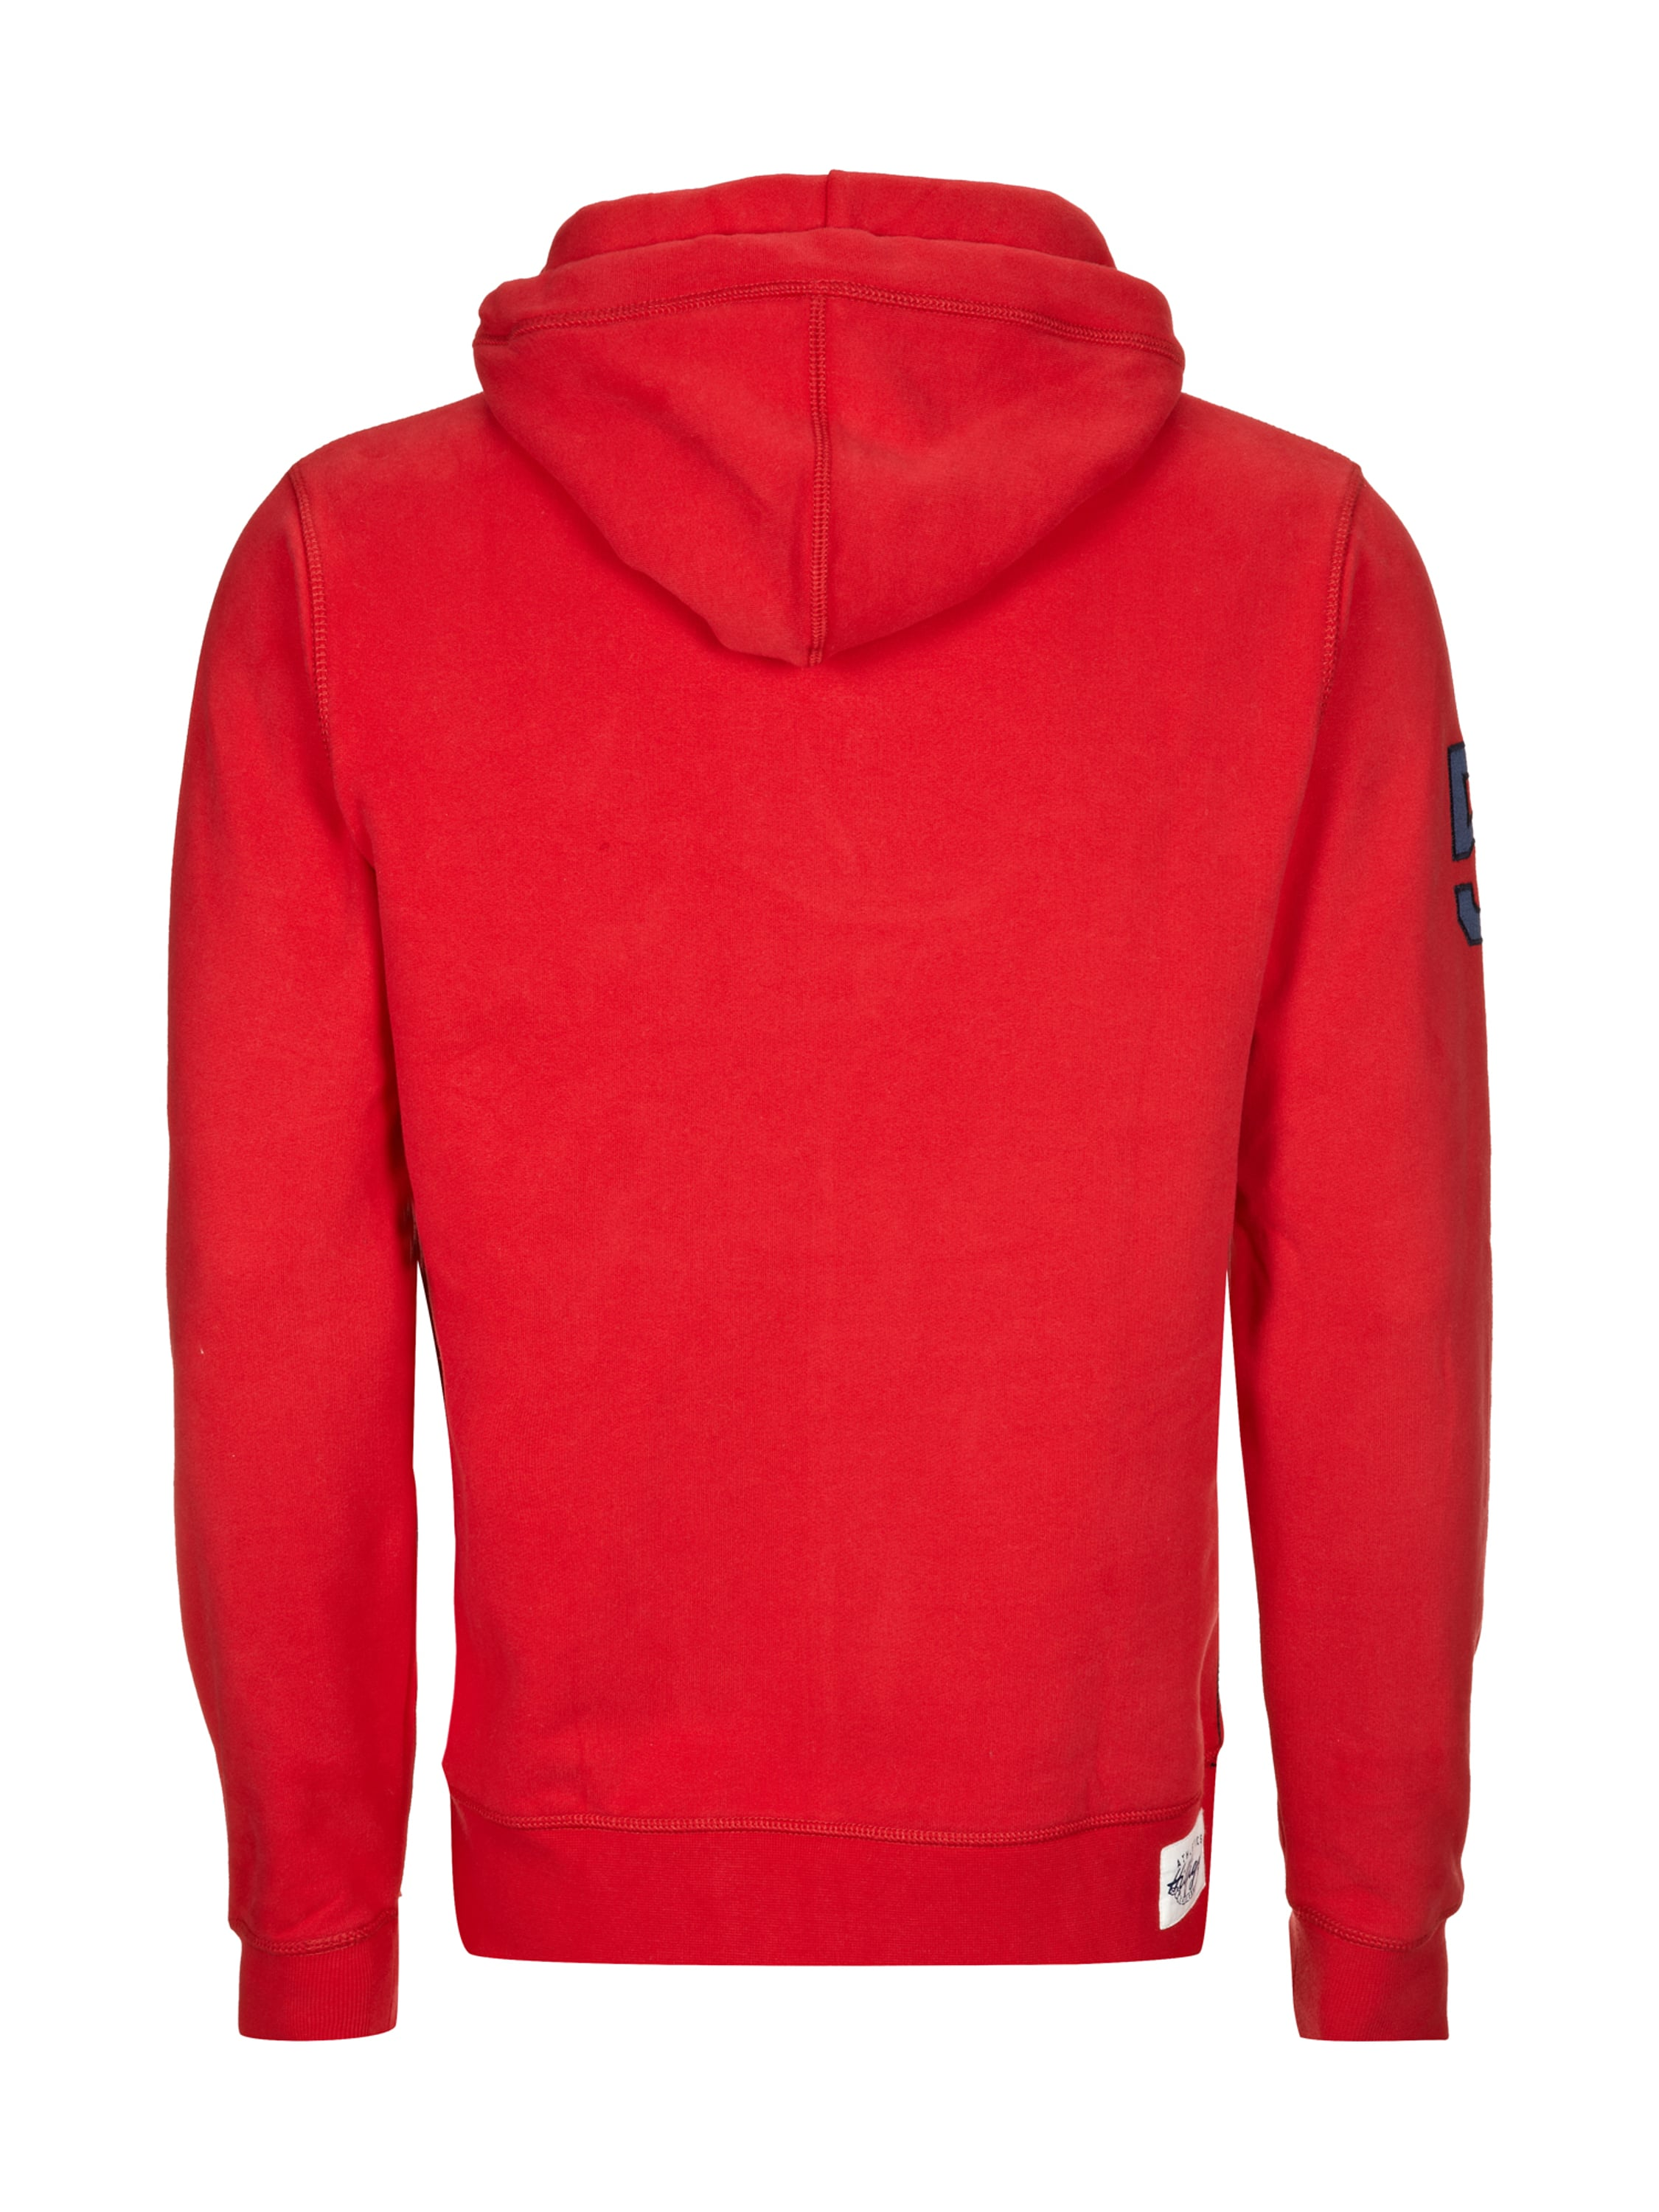 tommy hilfiger hoodie mit logo flockprint in rot online kaufen 8920512 p c online shop. Black Bedroom Furniture Sets. Home Design Ideas